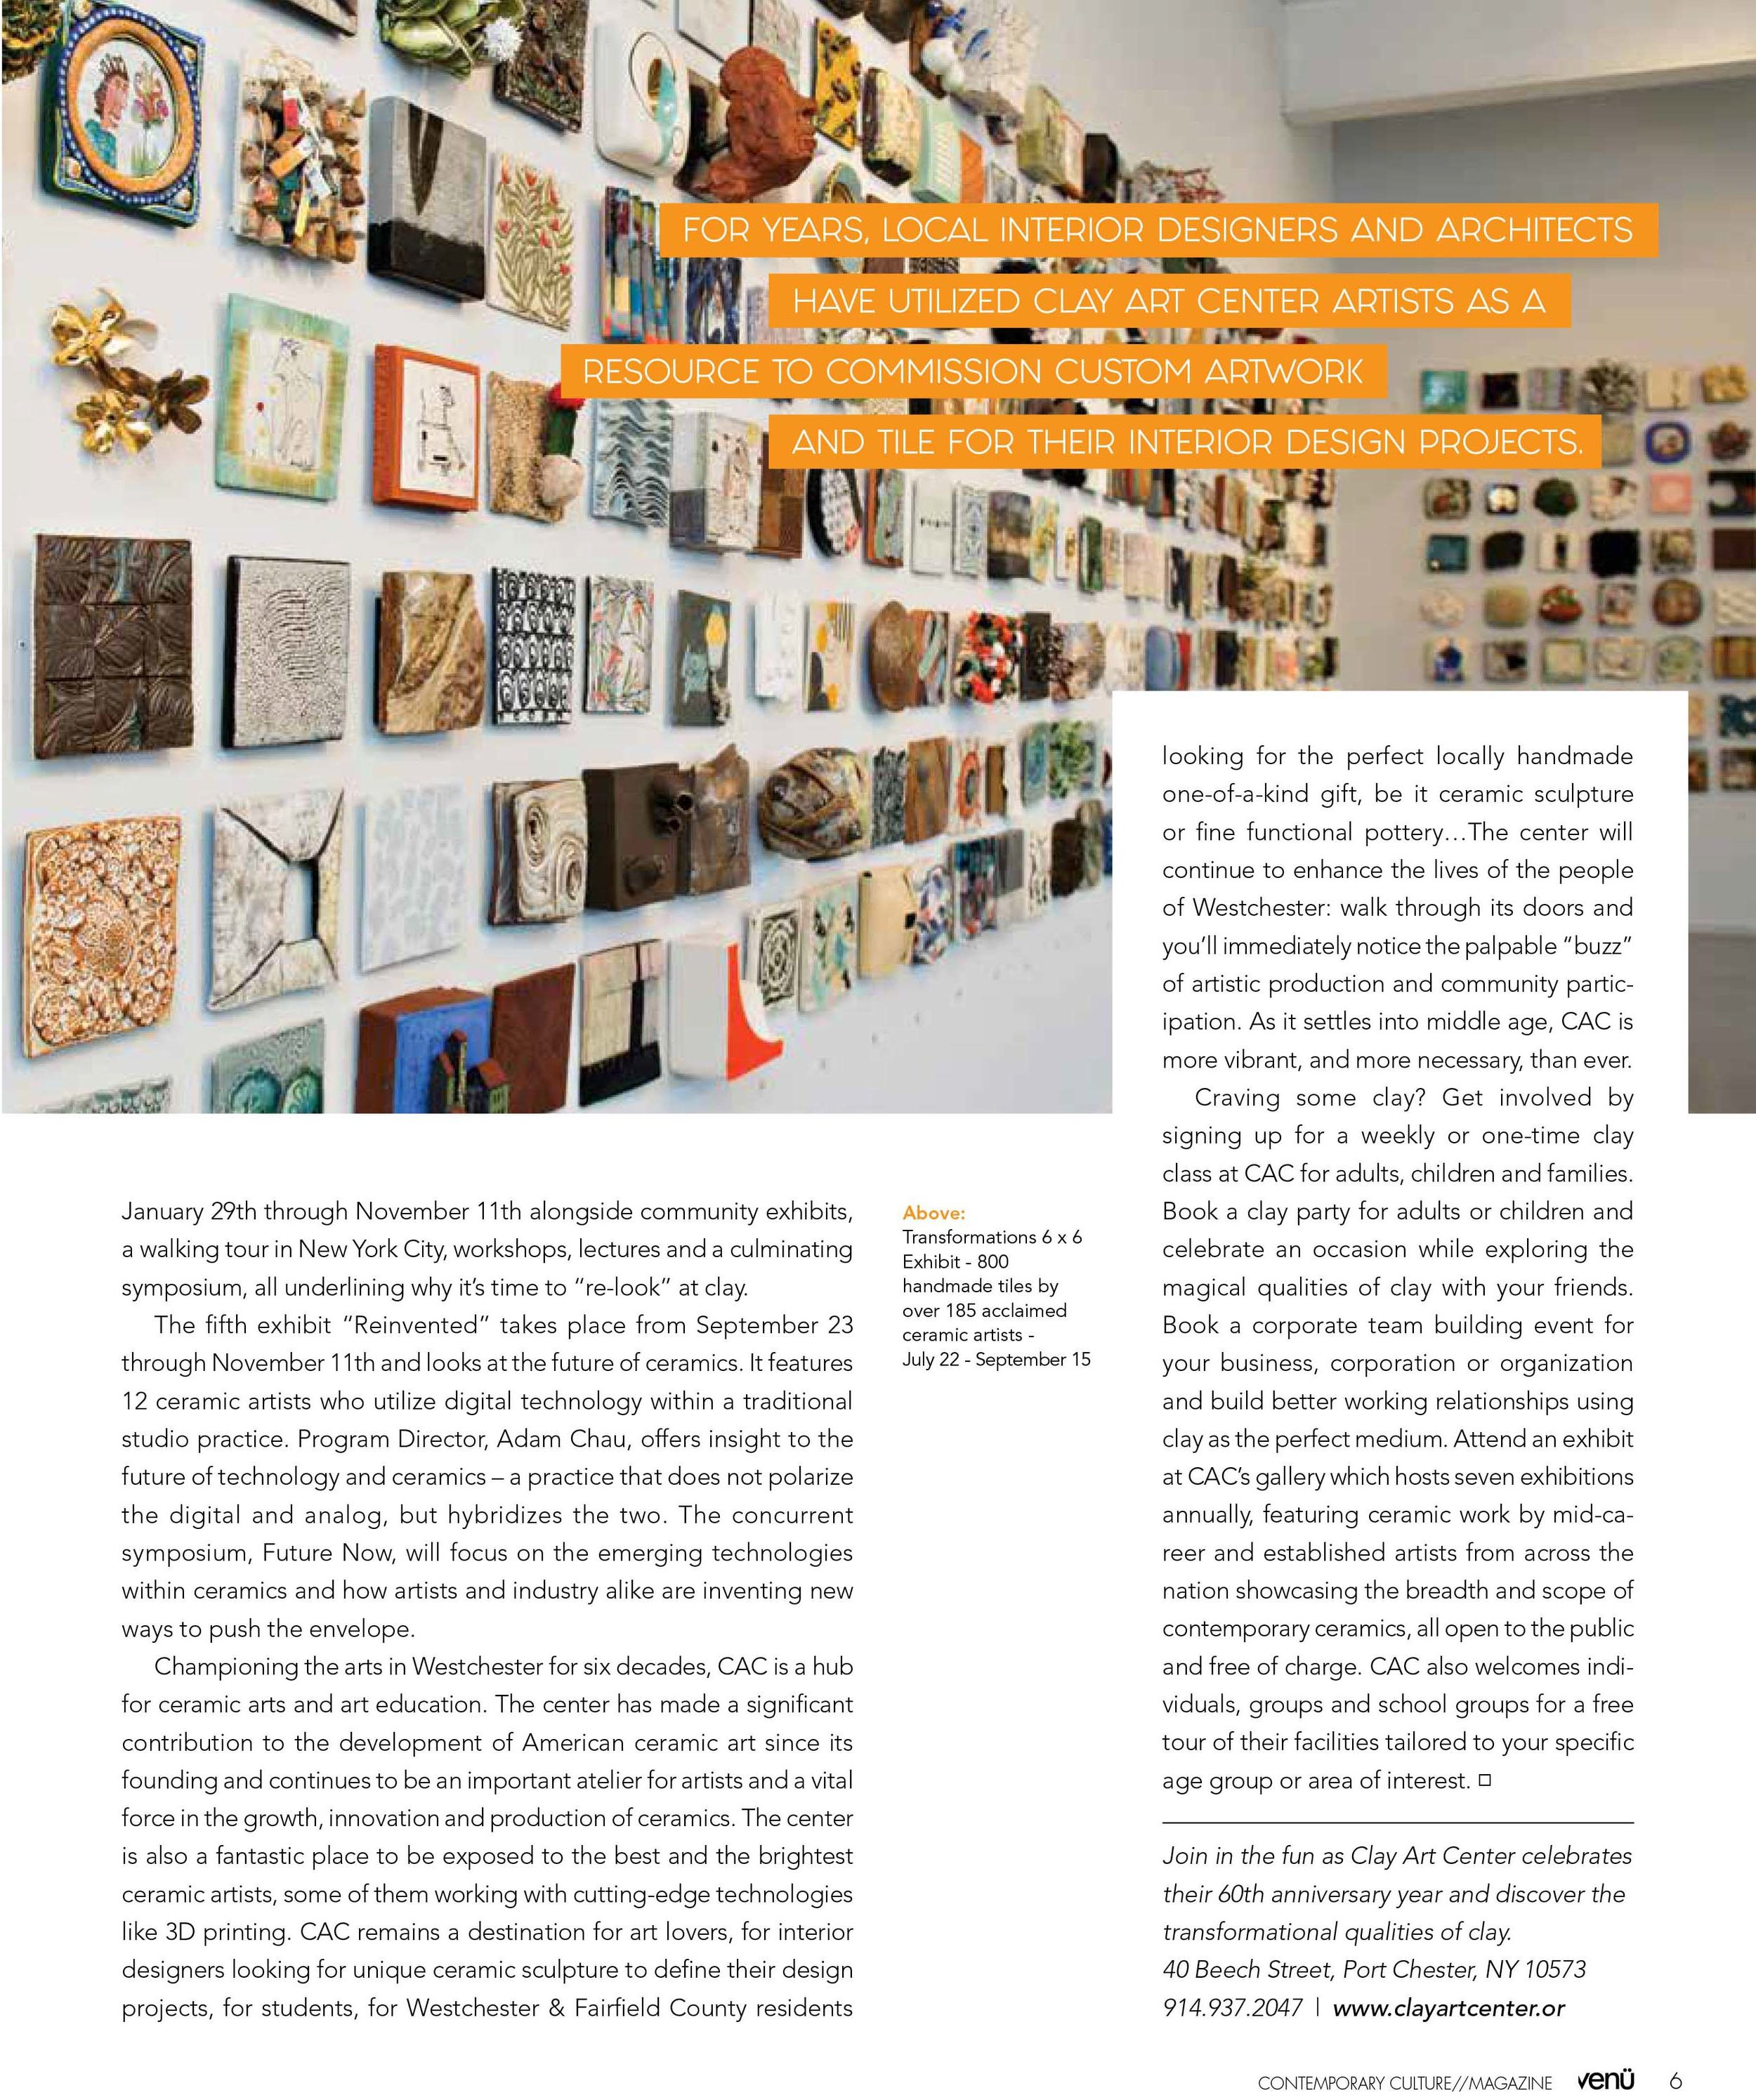 Clay Art Center Venu Magazine Feature Fall 2017-page 6.jpg